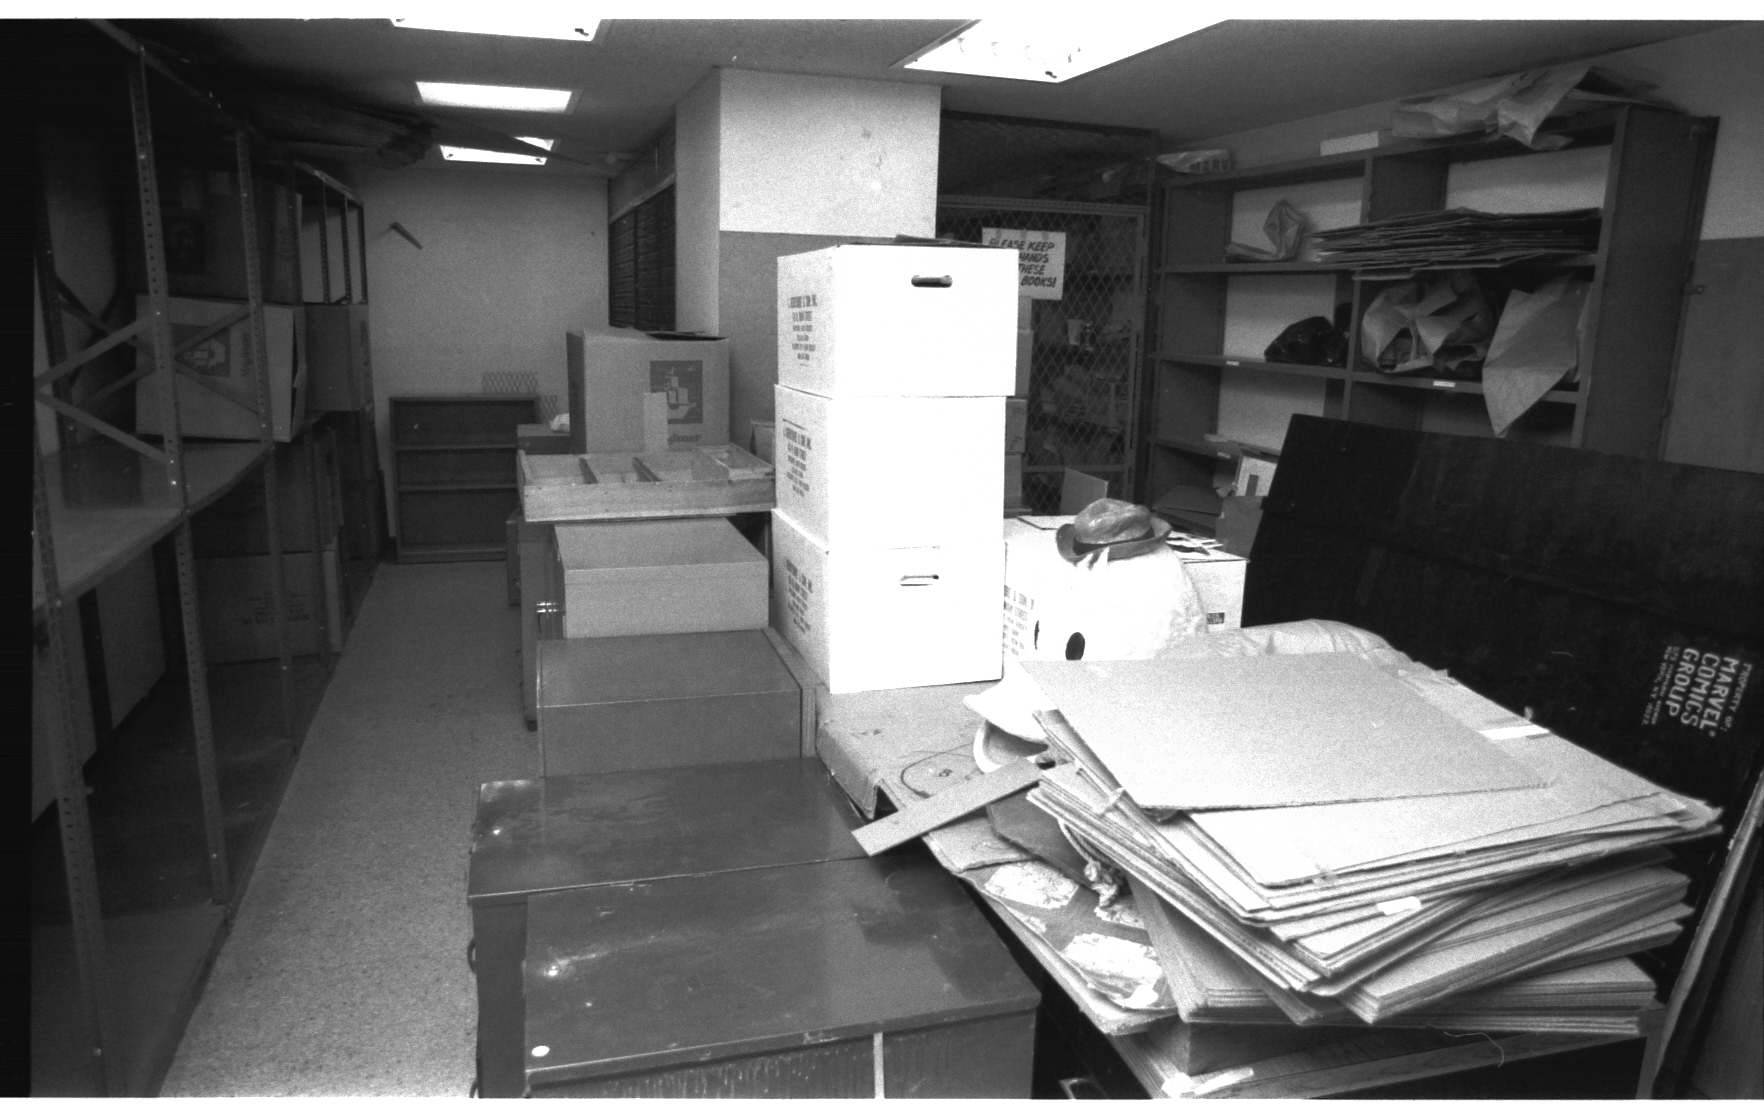 And a better exposed shot of the 9th Floor mailroom. Things were being moved out at this point!